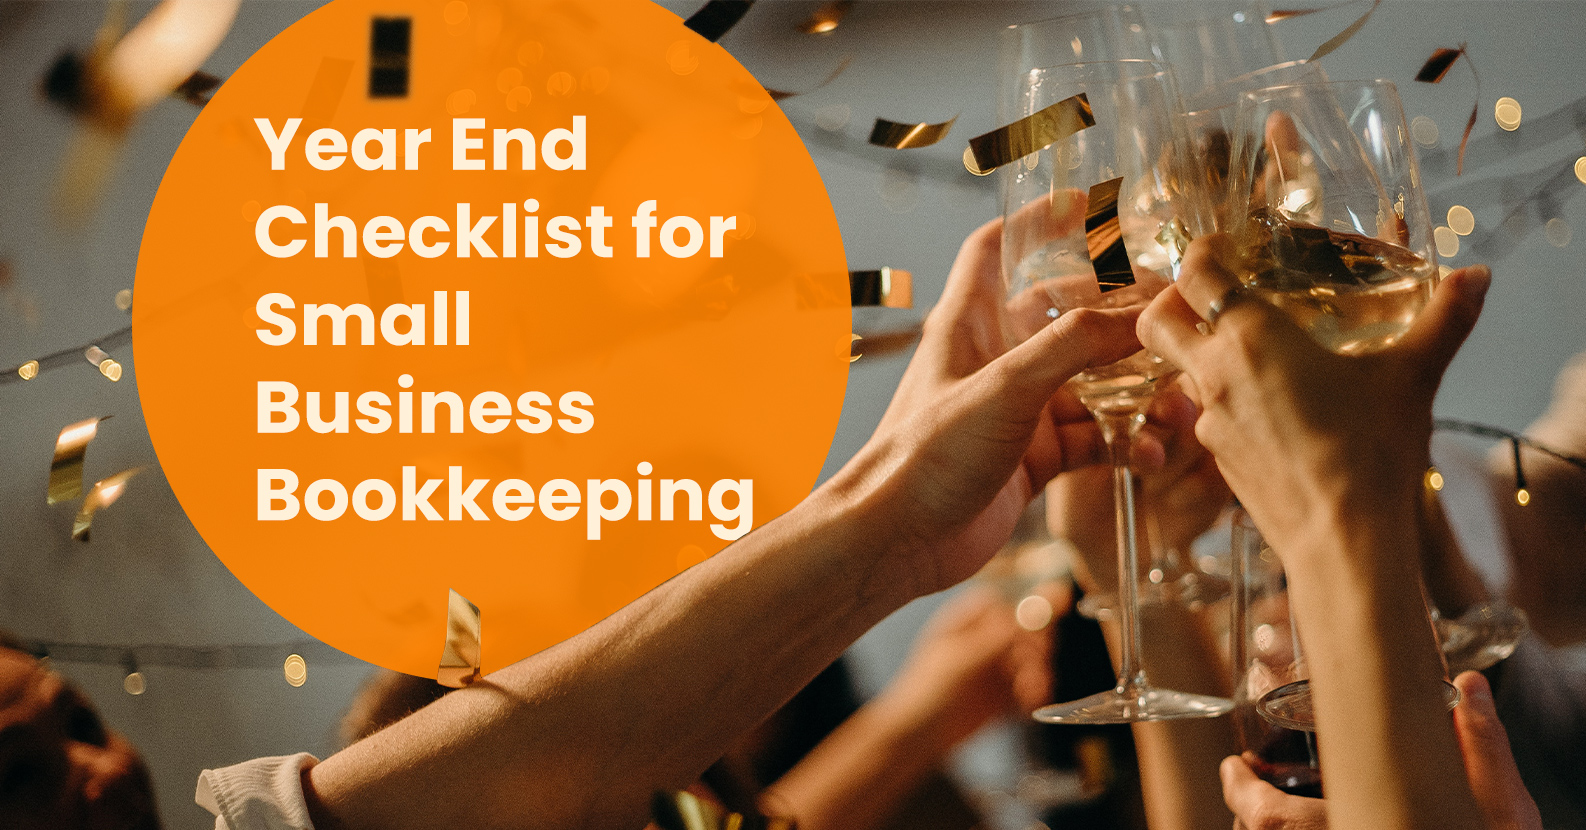 Year End Checklist for Small Business Bookkeeping